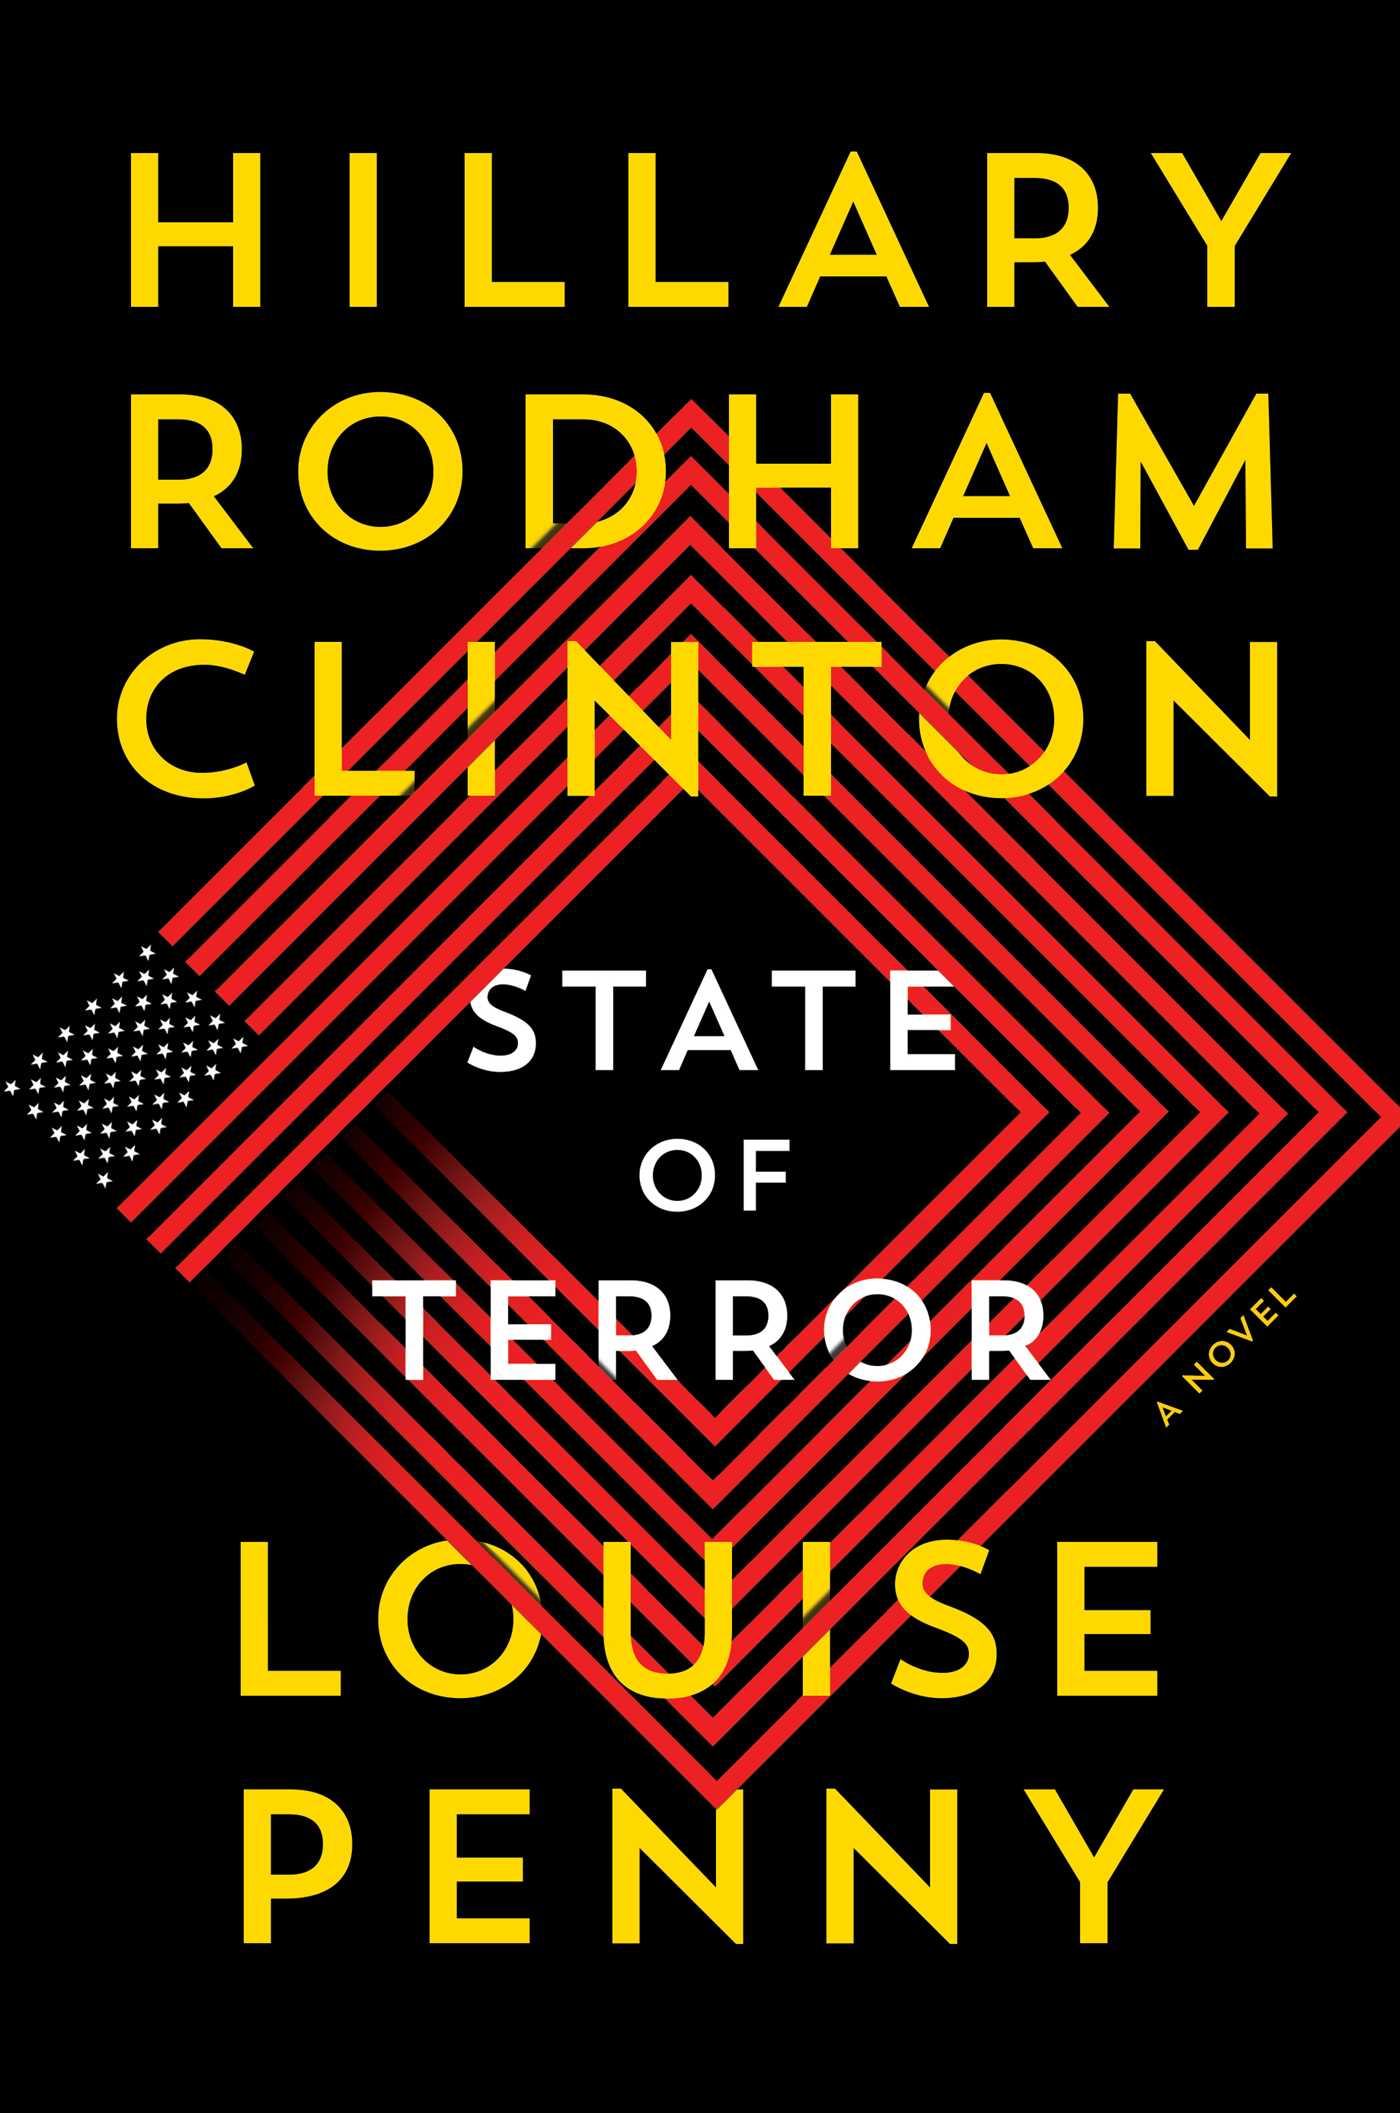 State of Terror Novel Release Date